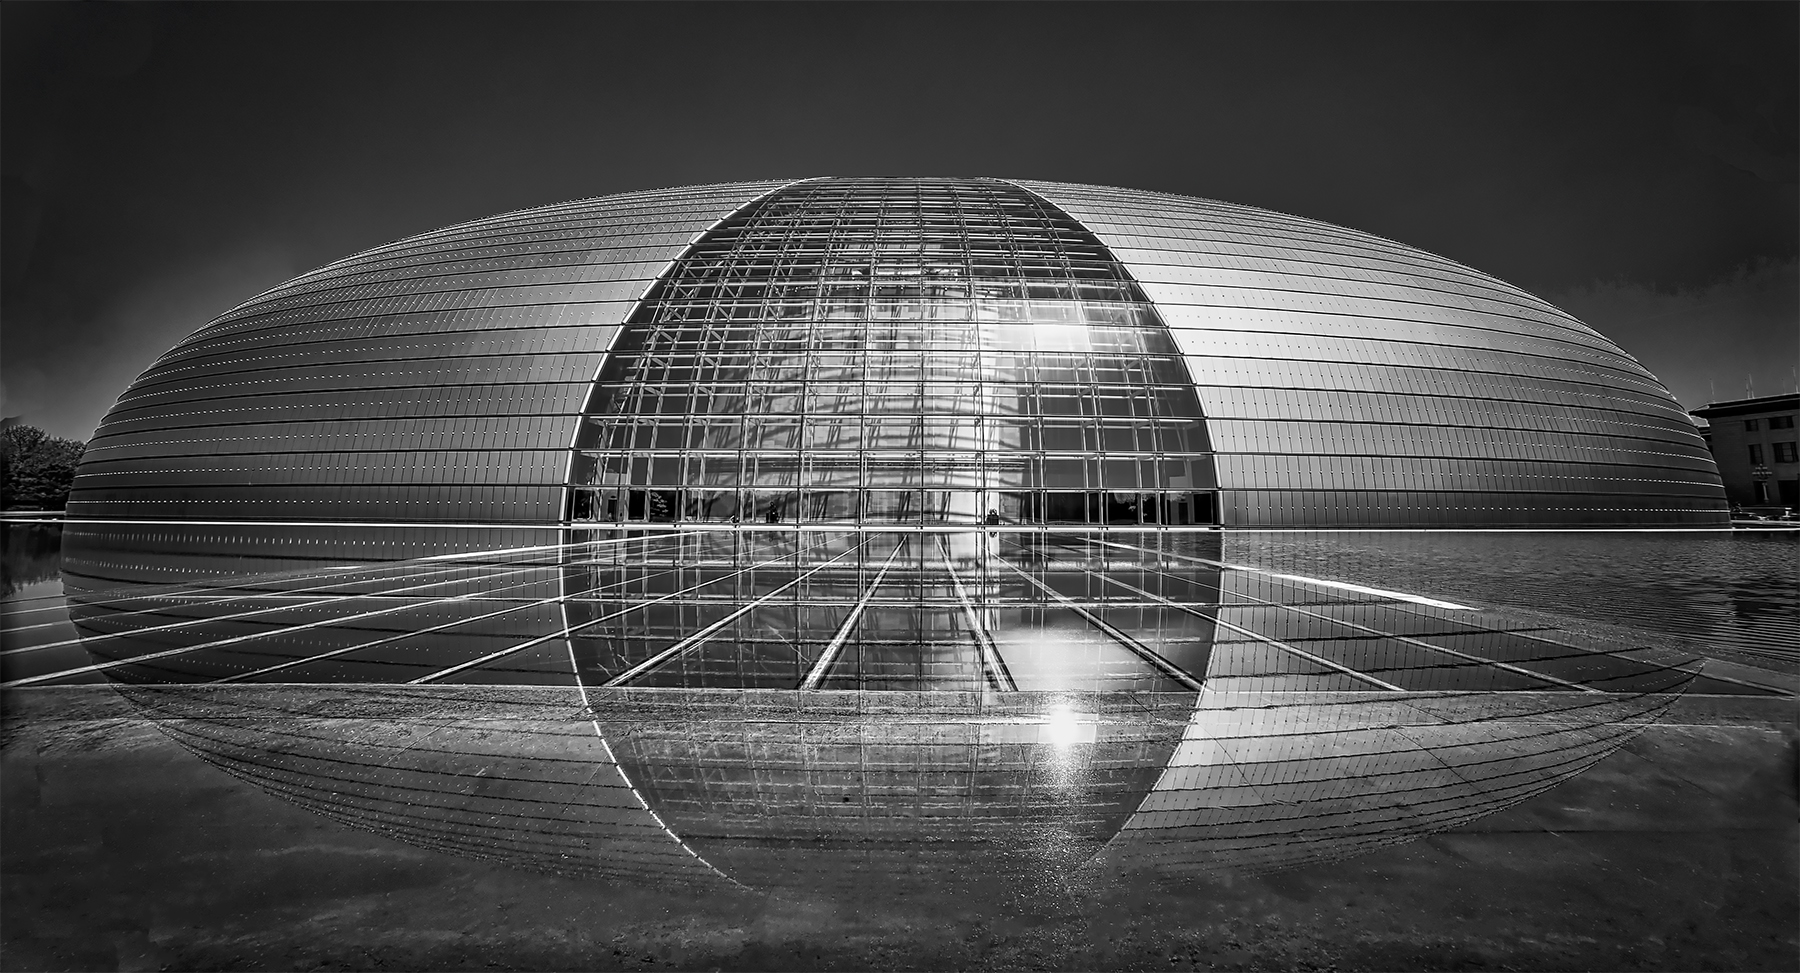 Carlos_Esguerra_The Egg_Beijing The Egg-6214_3.jpg